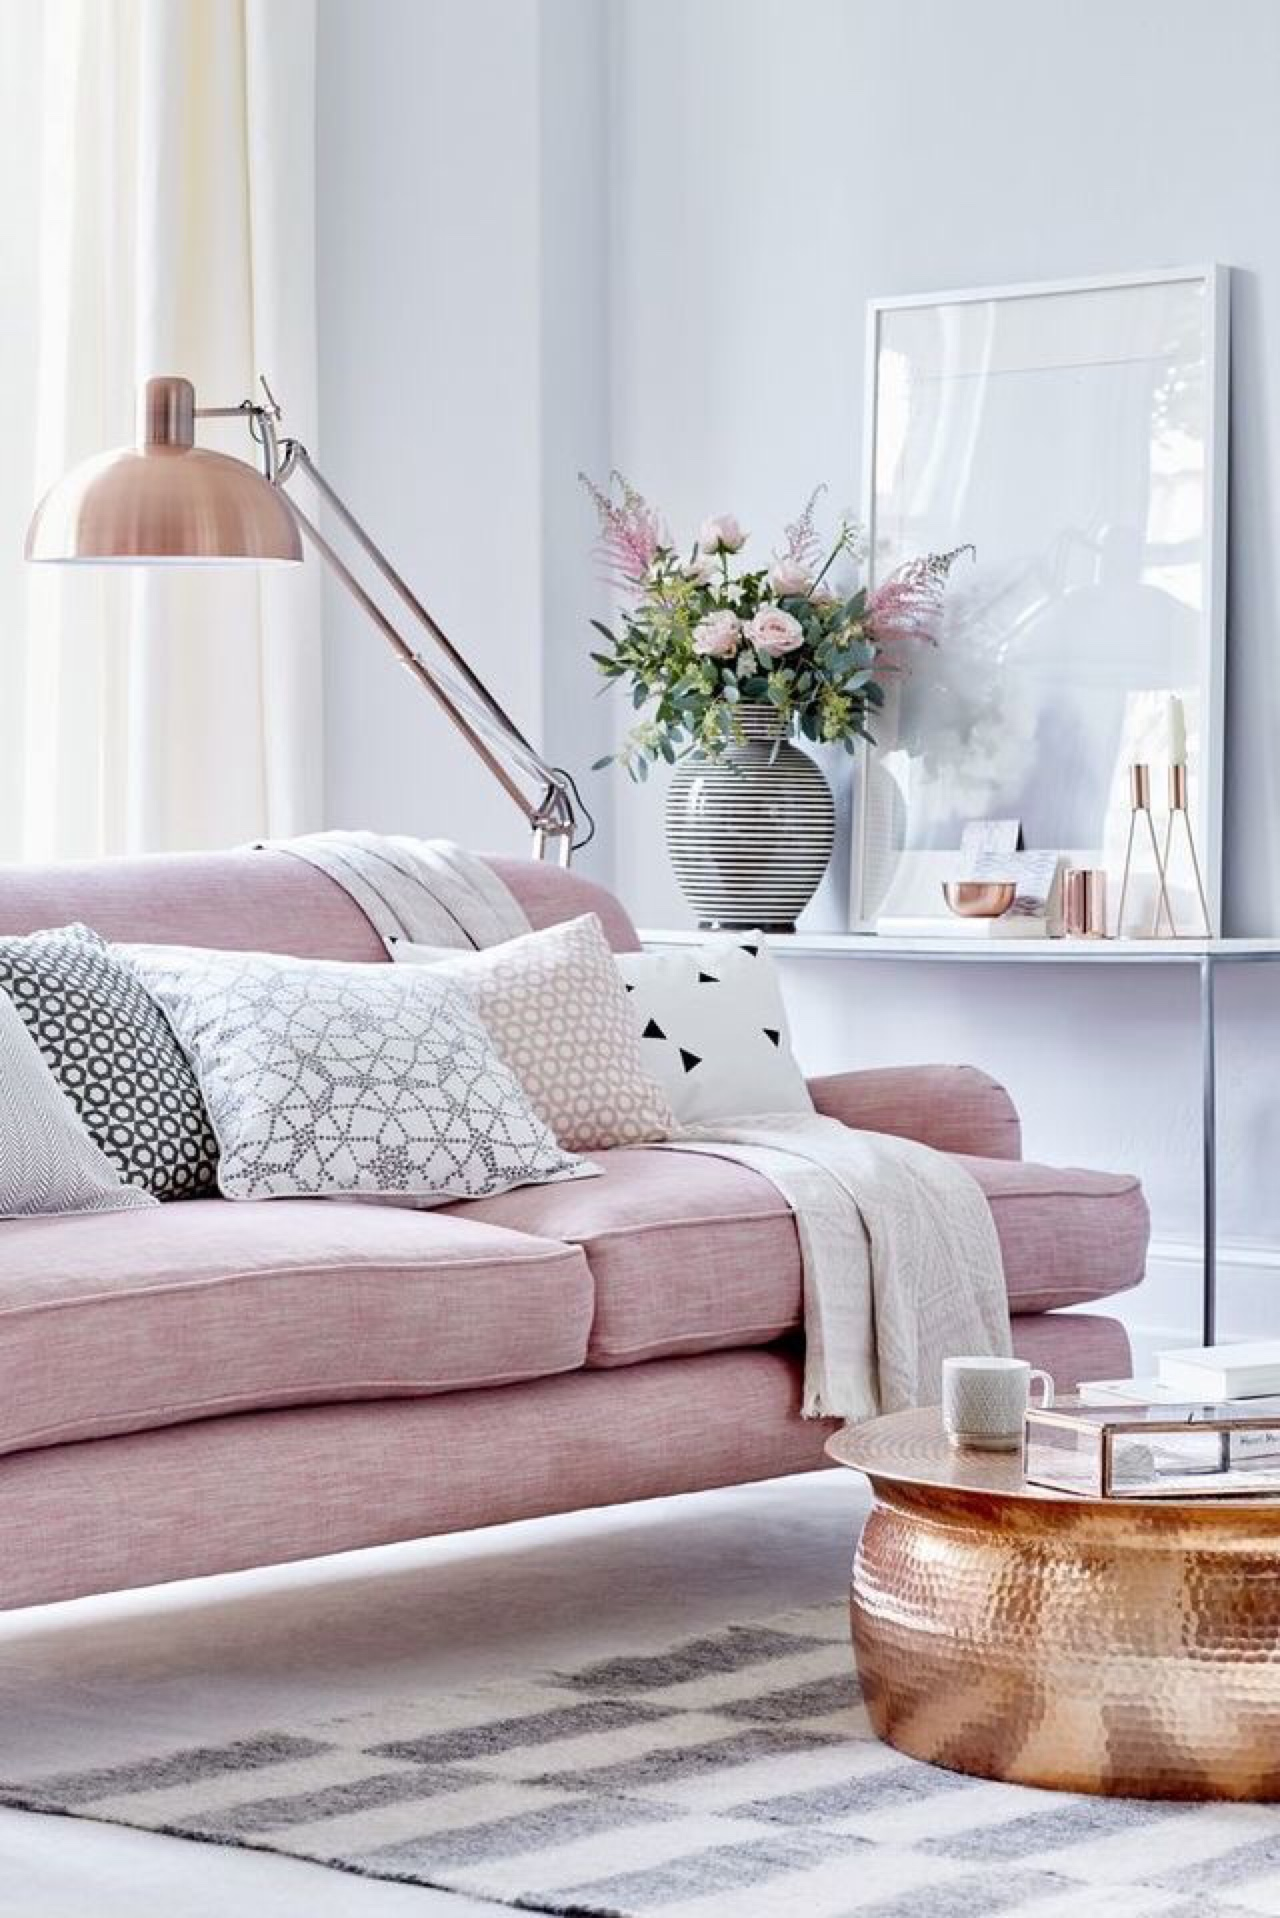 Living Room 10 Refreshing Ways To Redecorate Your Living Room For Summer 10  Refreshing Ways To